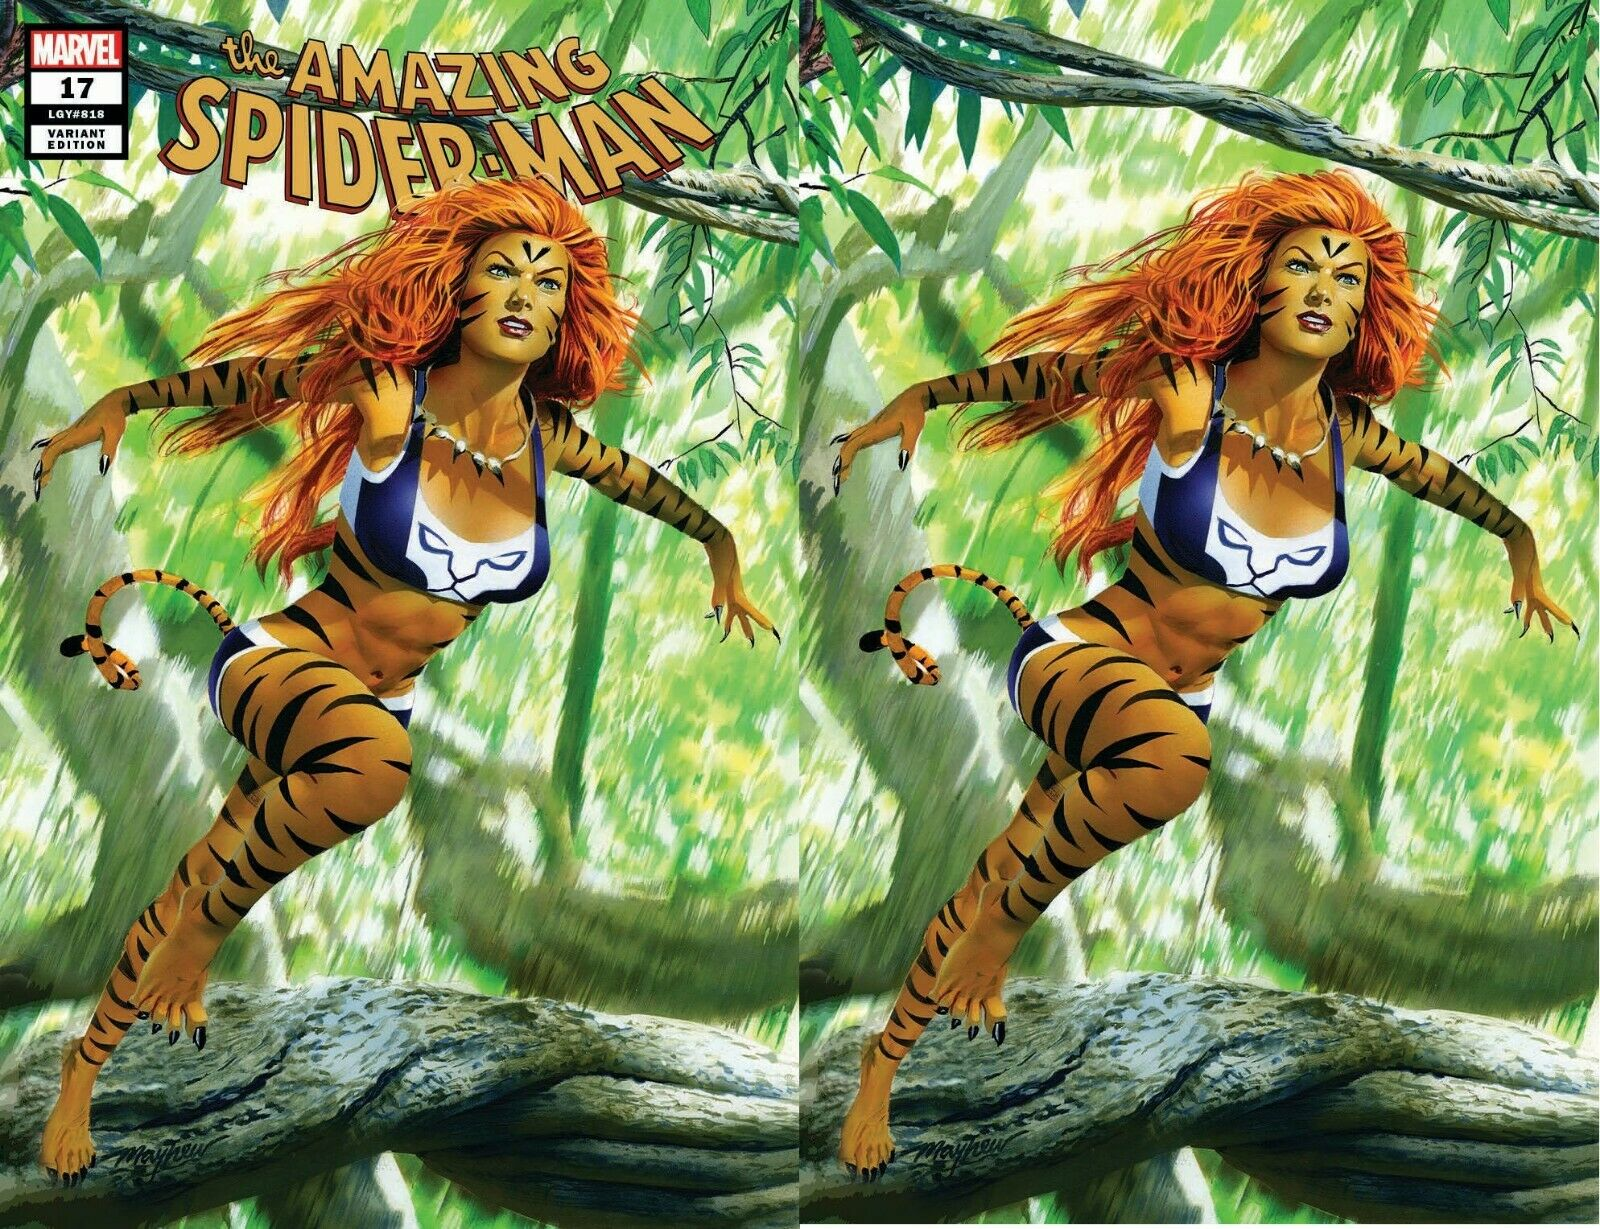 AMAZING SPIDER-MAN #17 MIKE MAYHEW TIGRA HUNTED EXCLUSIVE VARIANTS